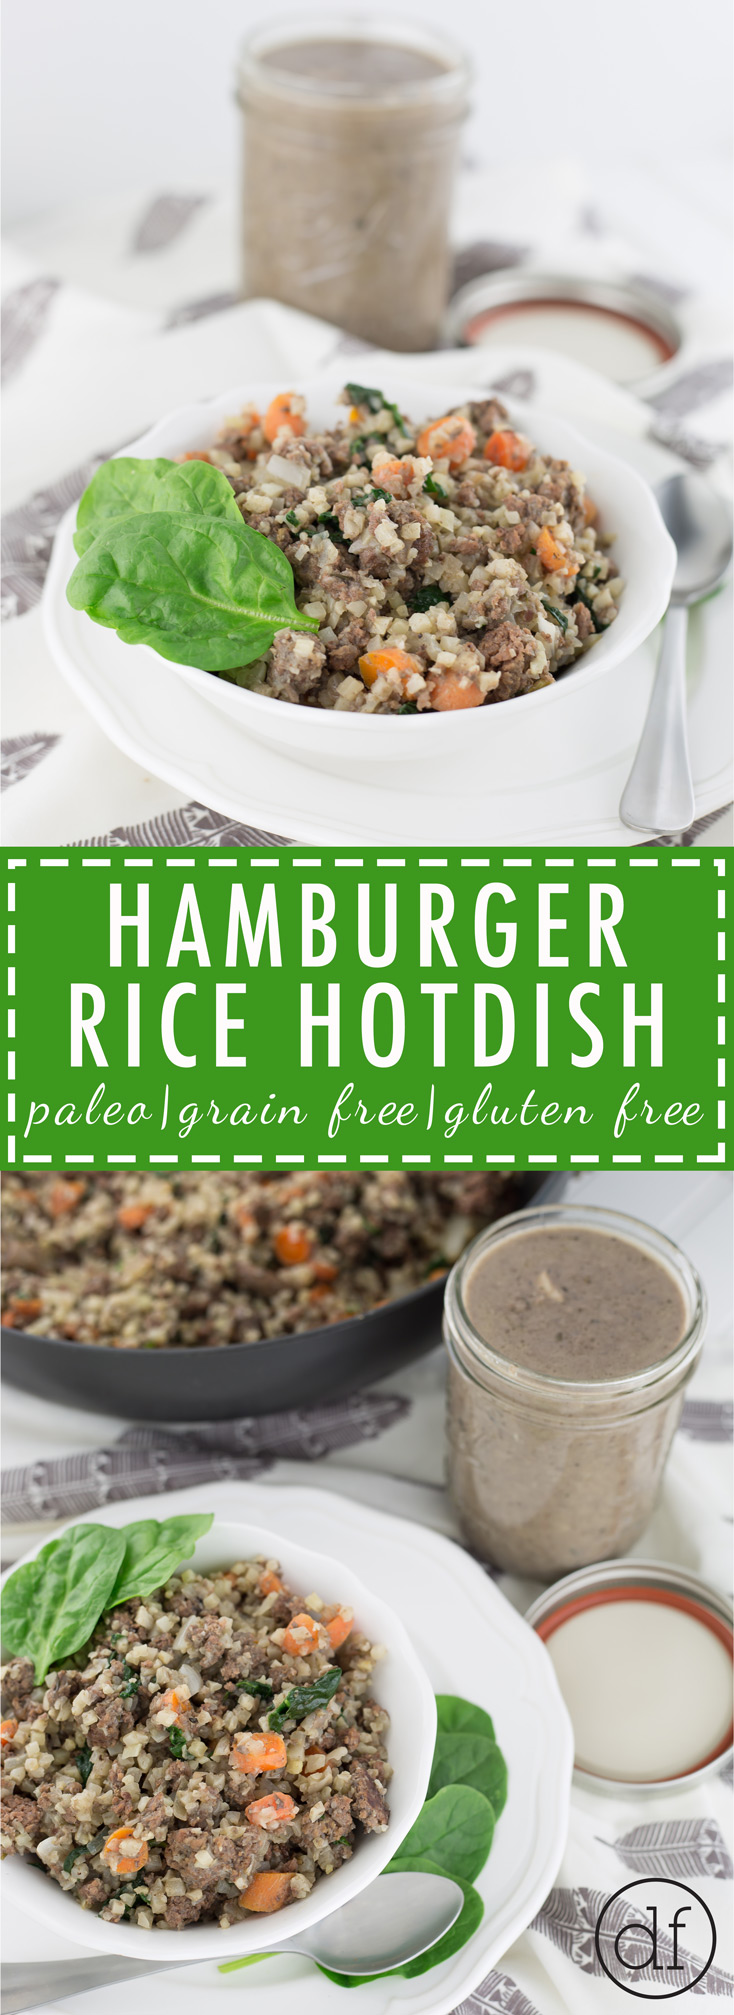 Hamburger Rice Hotdish, Healthy Hotdish, Healthy Recipes, Minnesota, Comfort Foods, Real Food, Gluten Free, Grain Free, Dairy Free, Paleo, Whole 30, Healthy Meals, Cauliflower Rice,